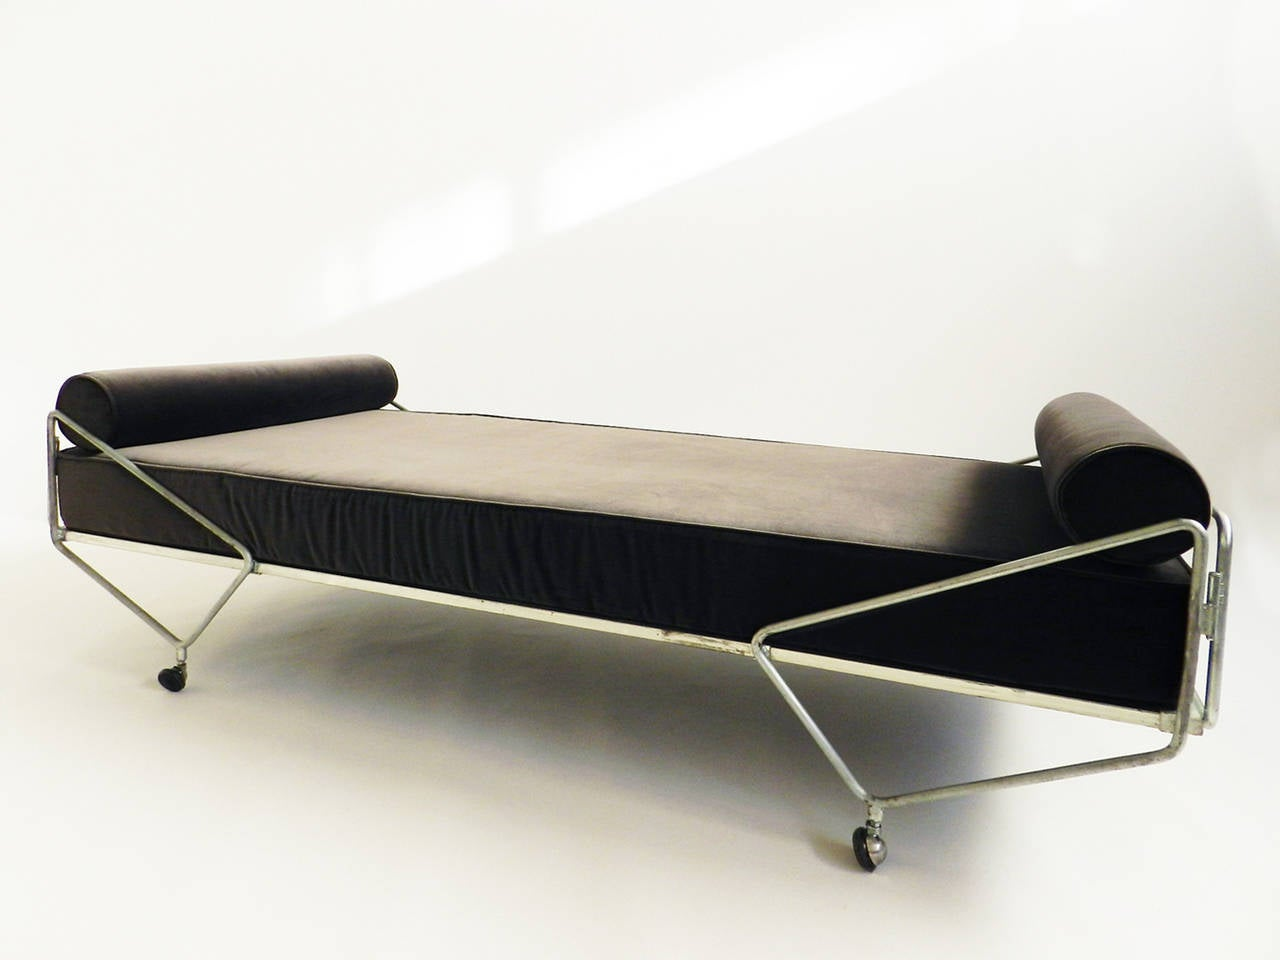 Gio Ponti Daybed from the Apta Series 2